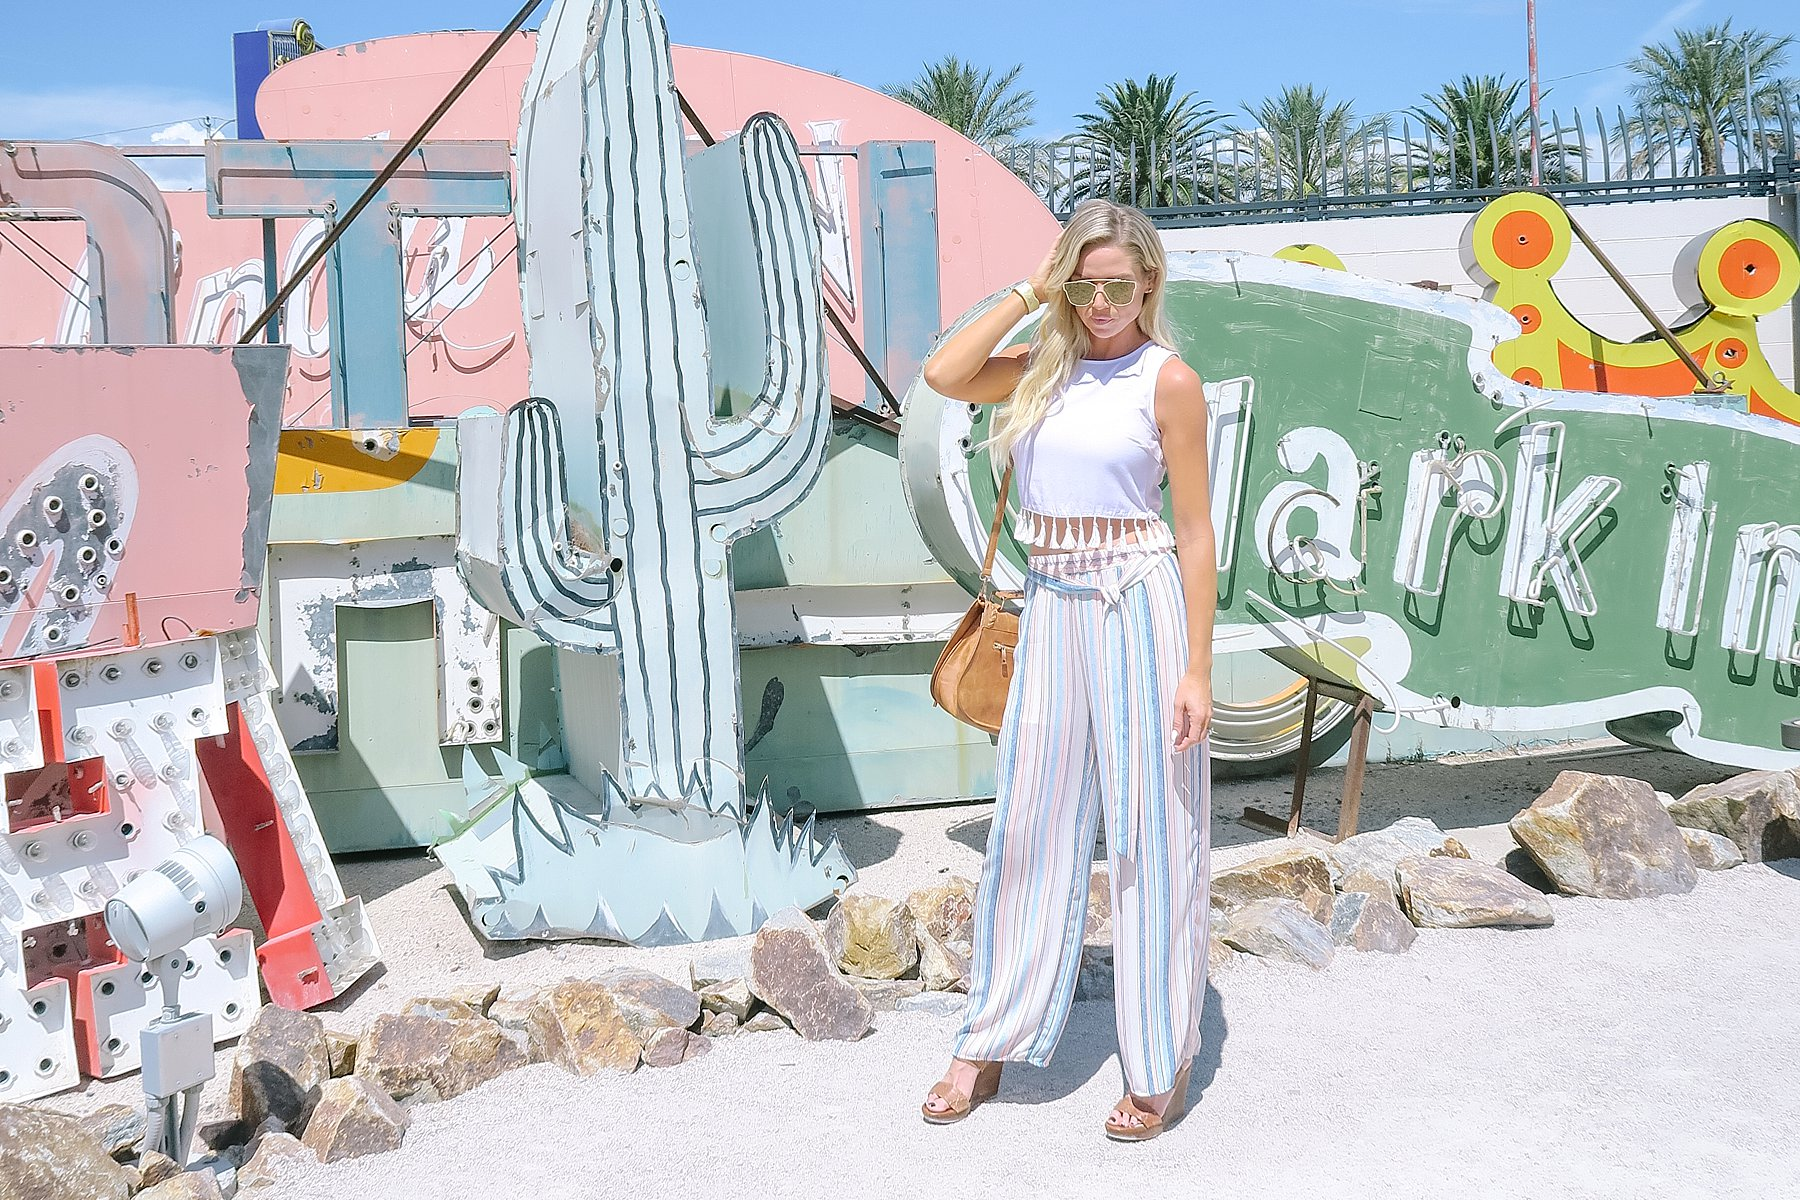 Things to do in Vegas, fun Clean unique and instagrammable! Las Vegas Neon Museum // great for instagram Ever blogger needs to check it out